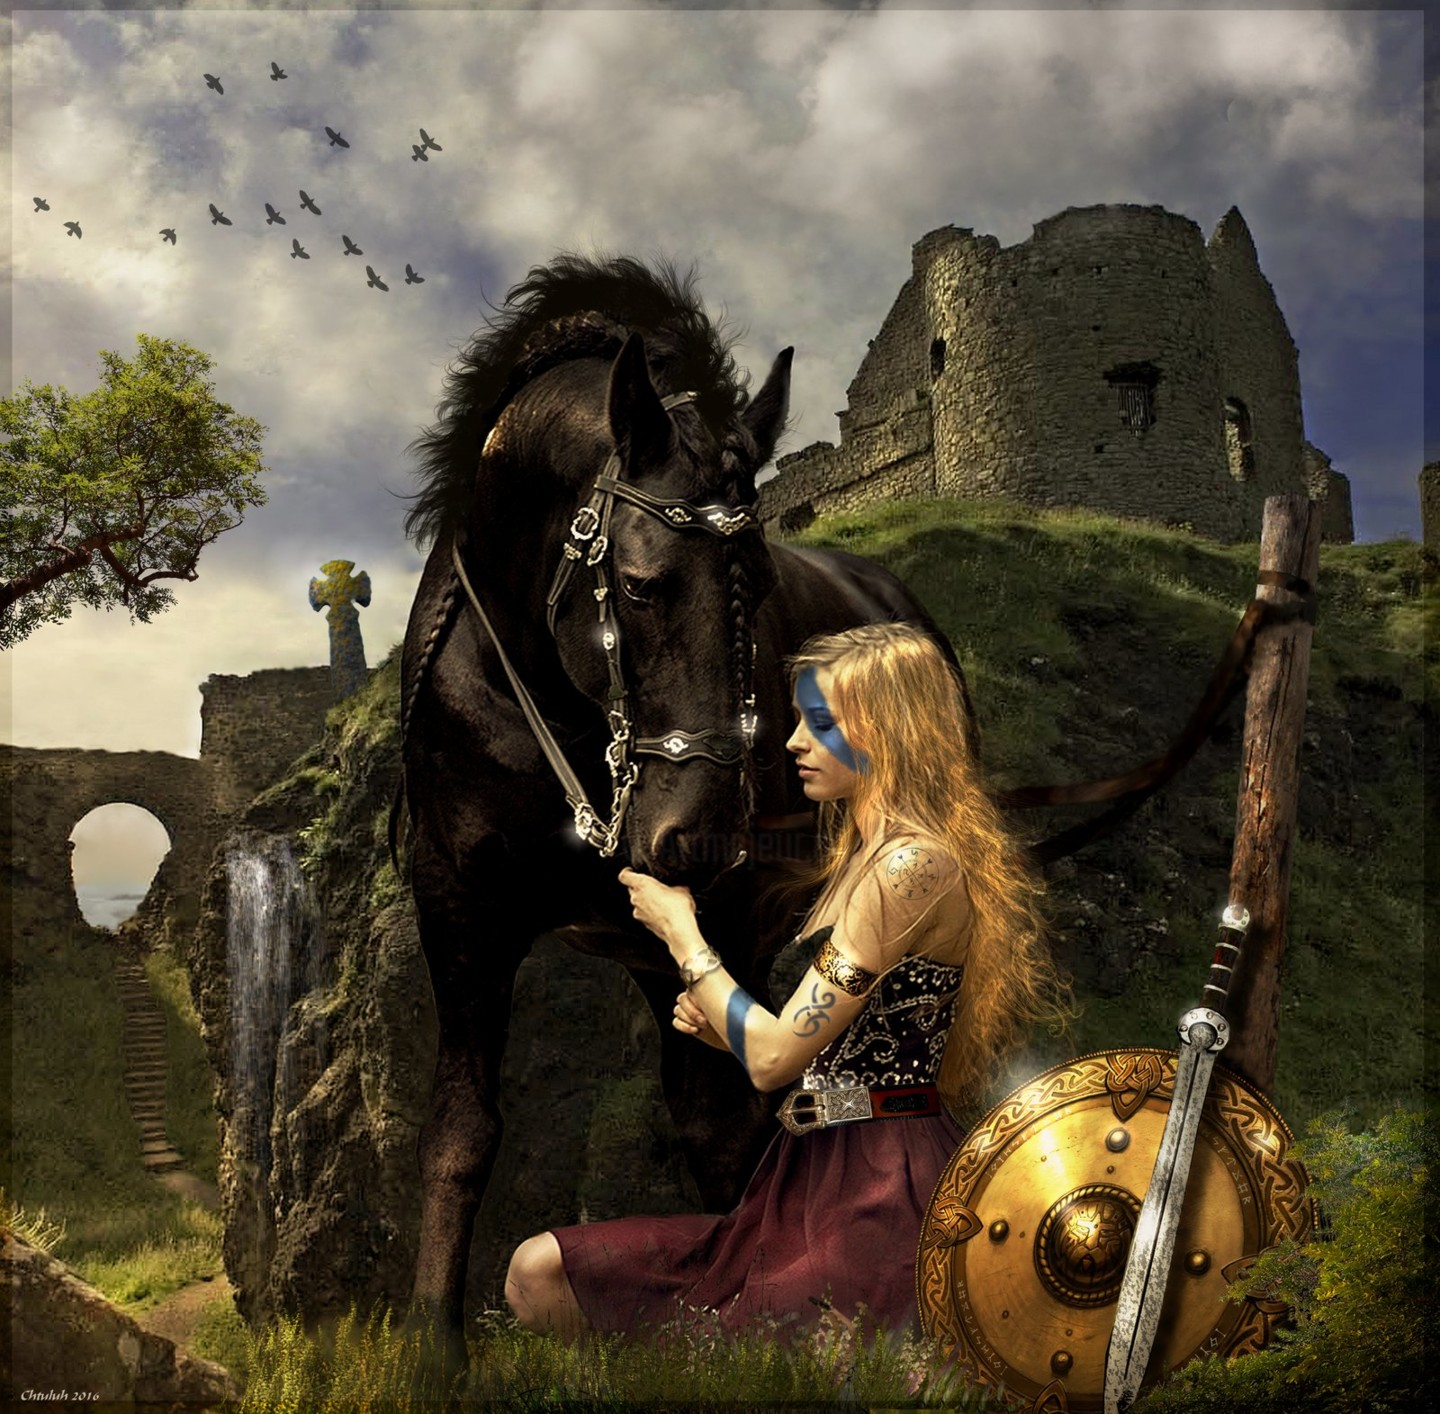 Viking Woman And Horse Chtuluh 2016 By Chtuluh2 D9w29lh Jpg Painting By Chtuluh Artmajeur